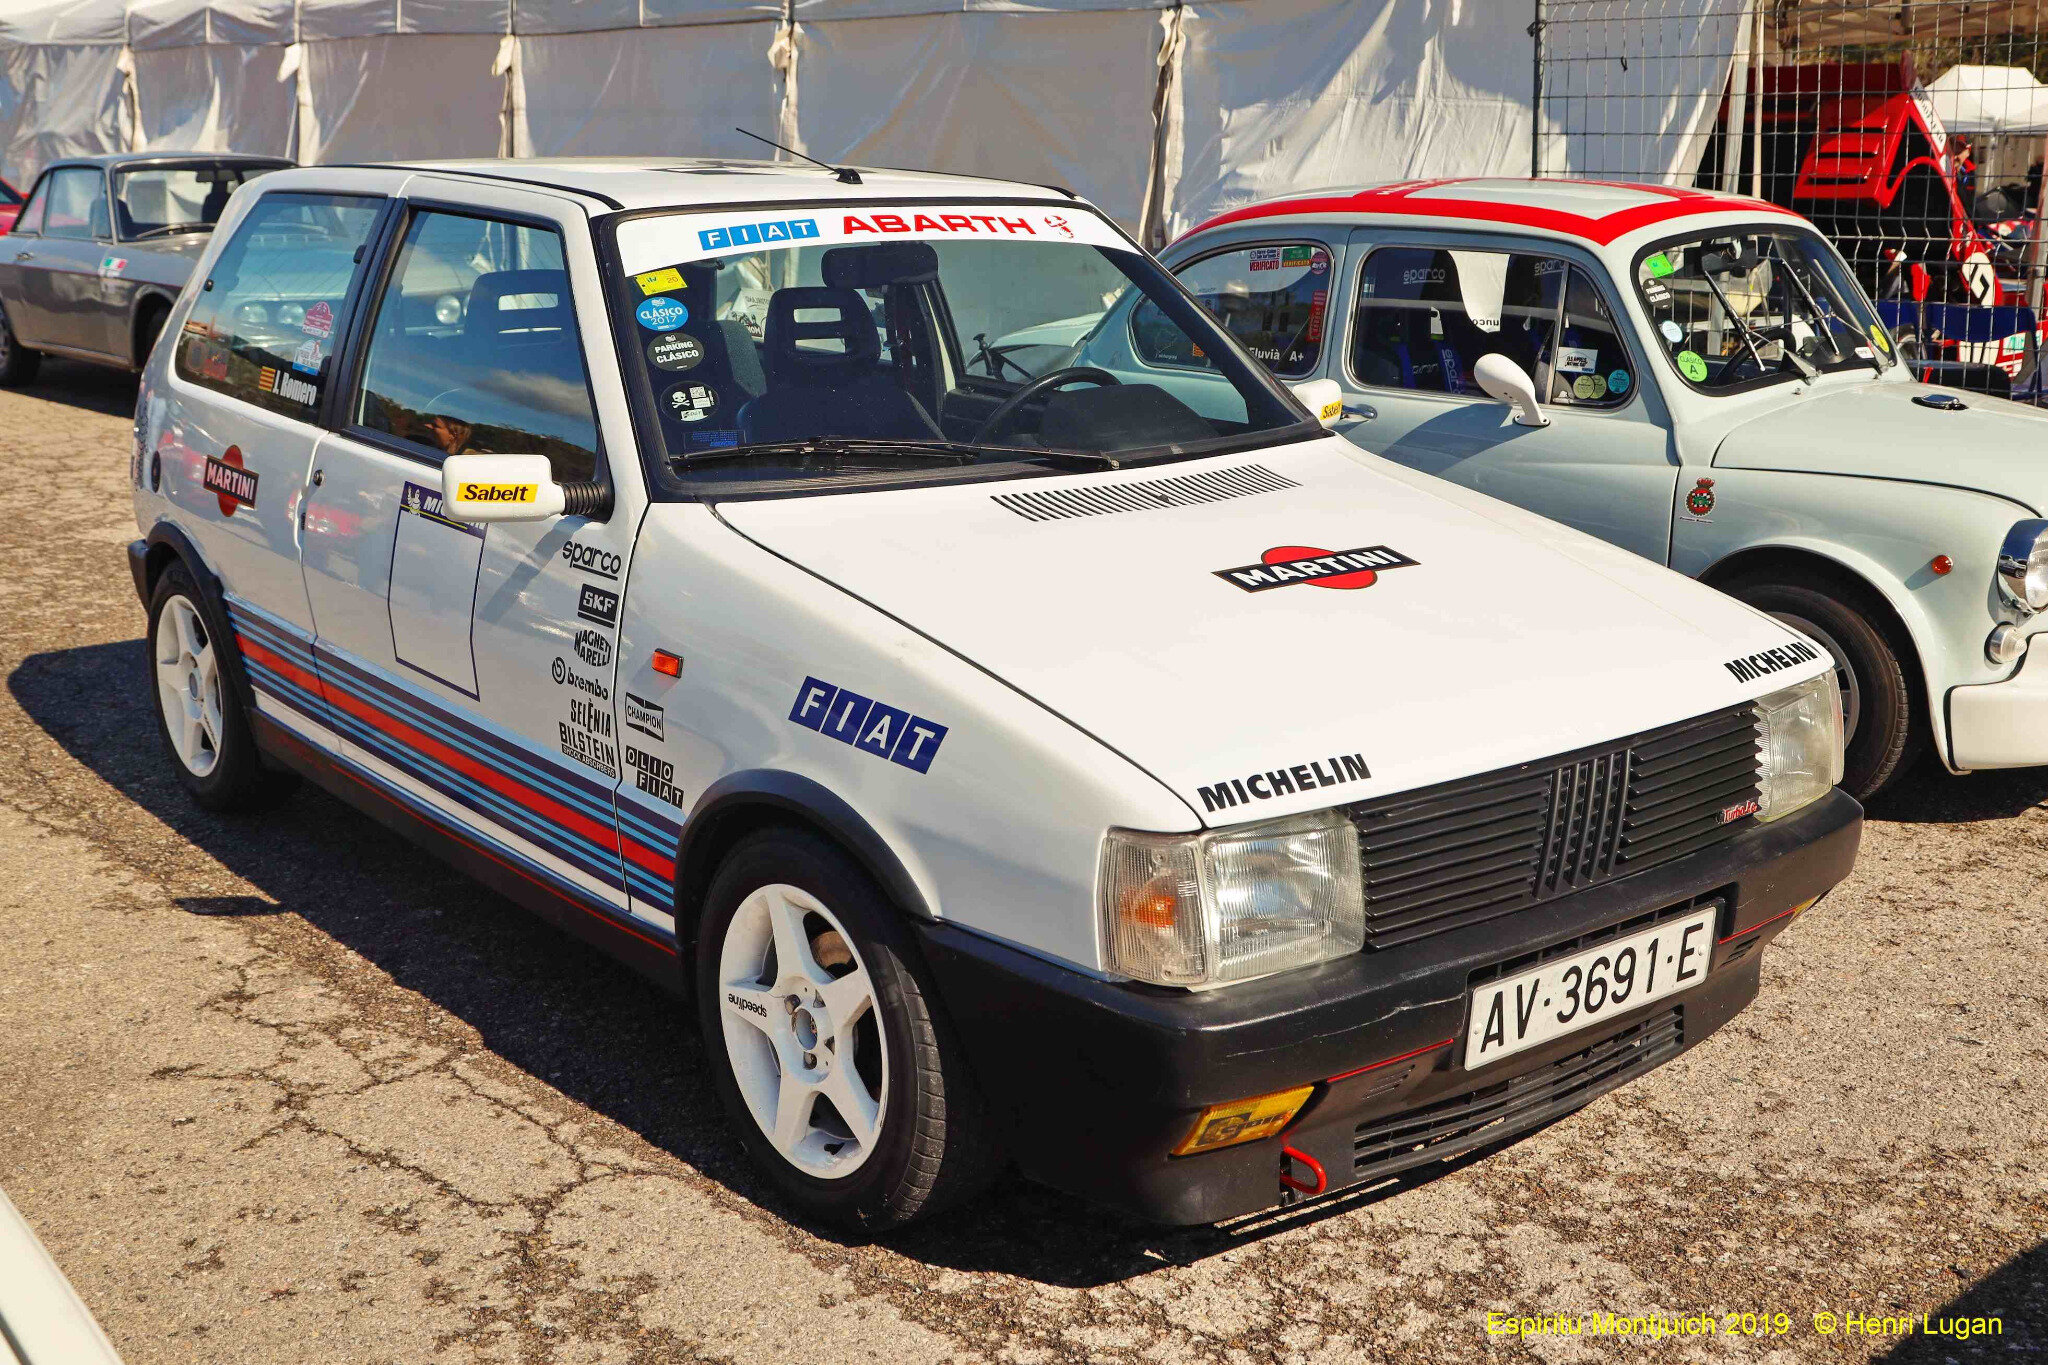 Fiat Uno Turbo ie_01 - 19-- [I] HL_GF